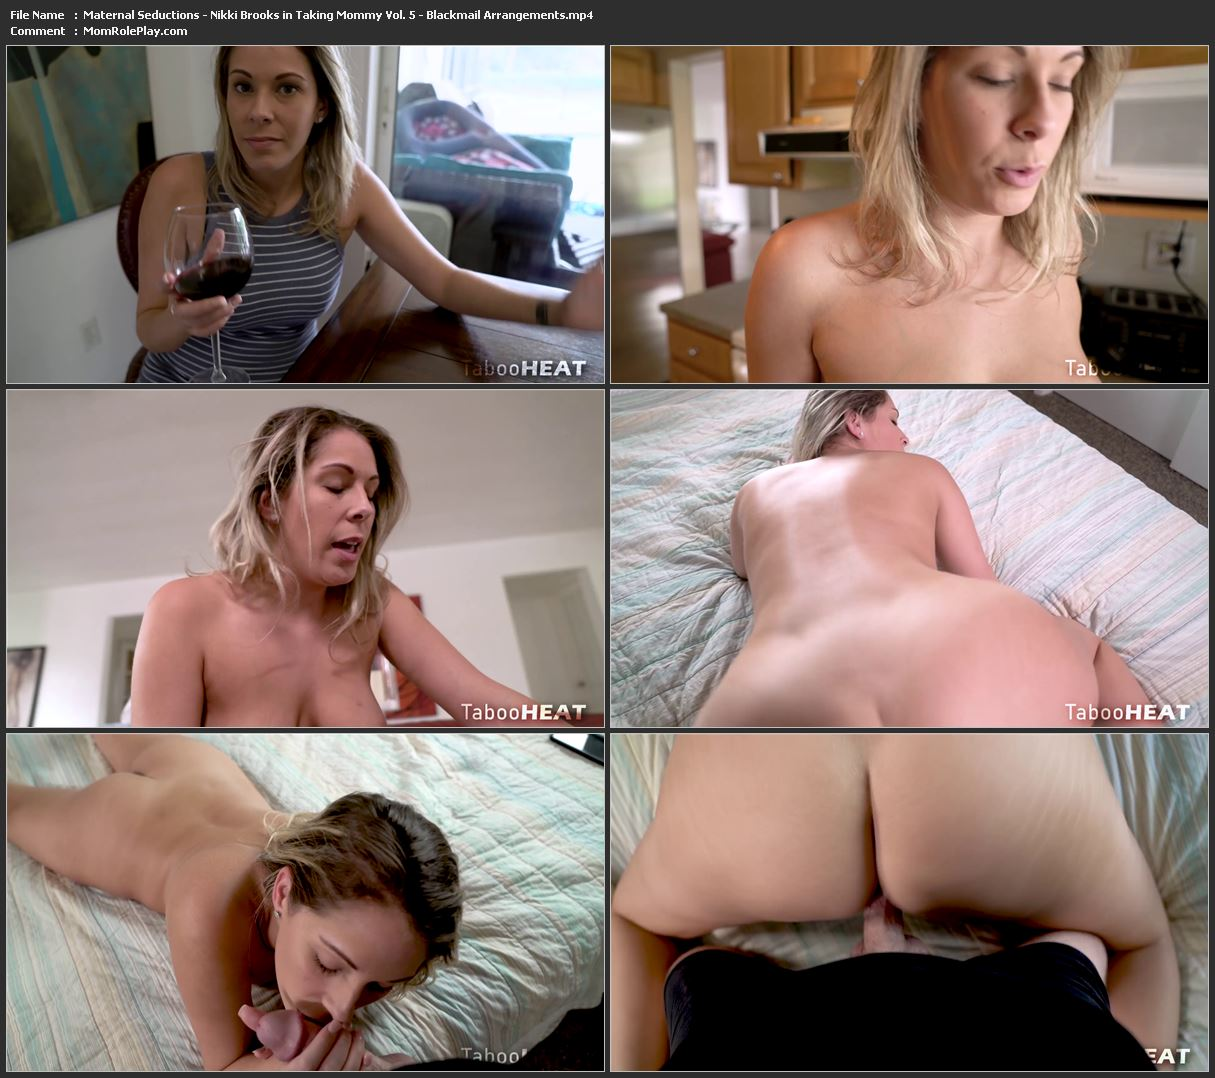 Maternal Seductions - Nikki Brooks in Taking Mommy Vol. 5 - Blackmail Arrangements (HD-1080p)